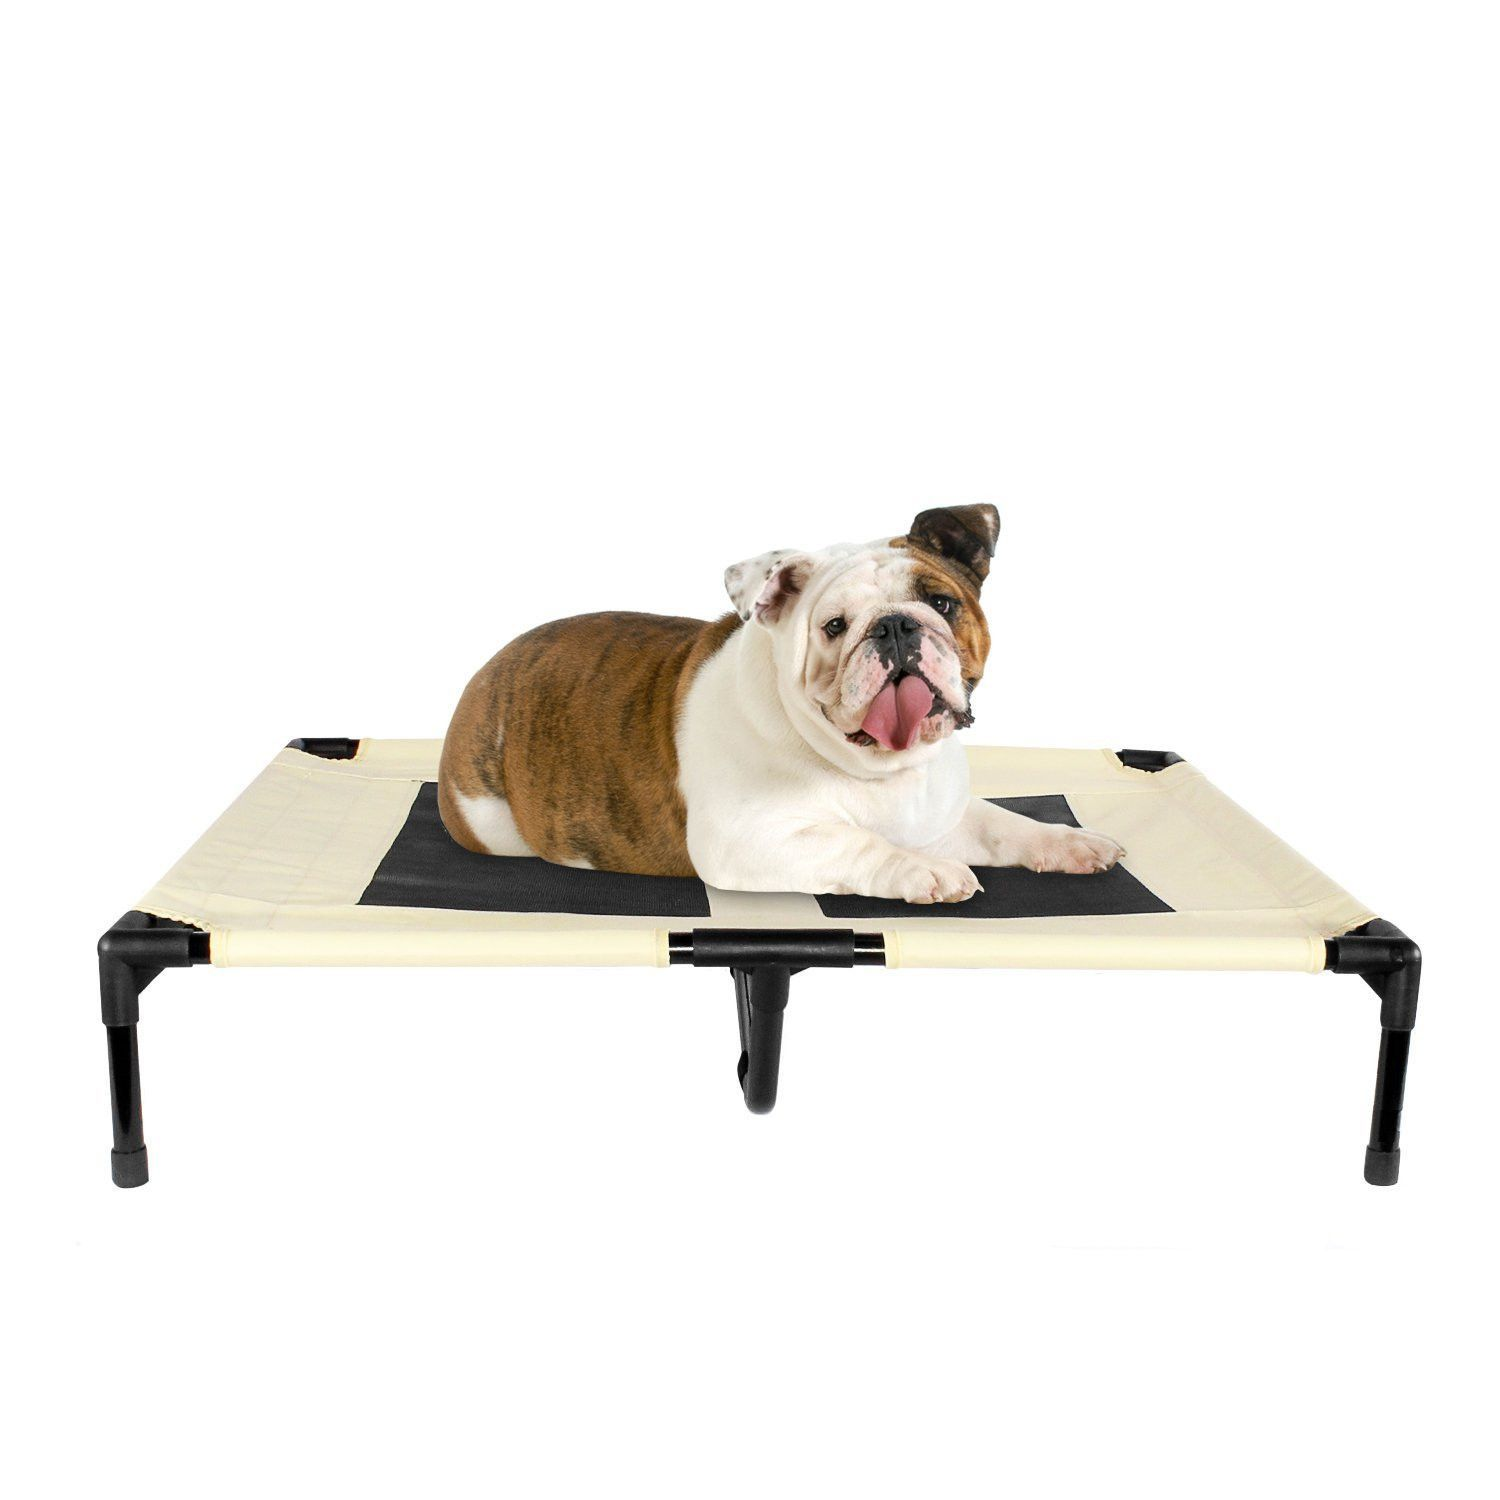 Dog Bed Elevated Indoor Outdoor Pet Portable Bed Large Beige Portable Bed Dog Bed Large Large Dog Crate